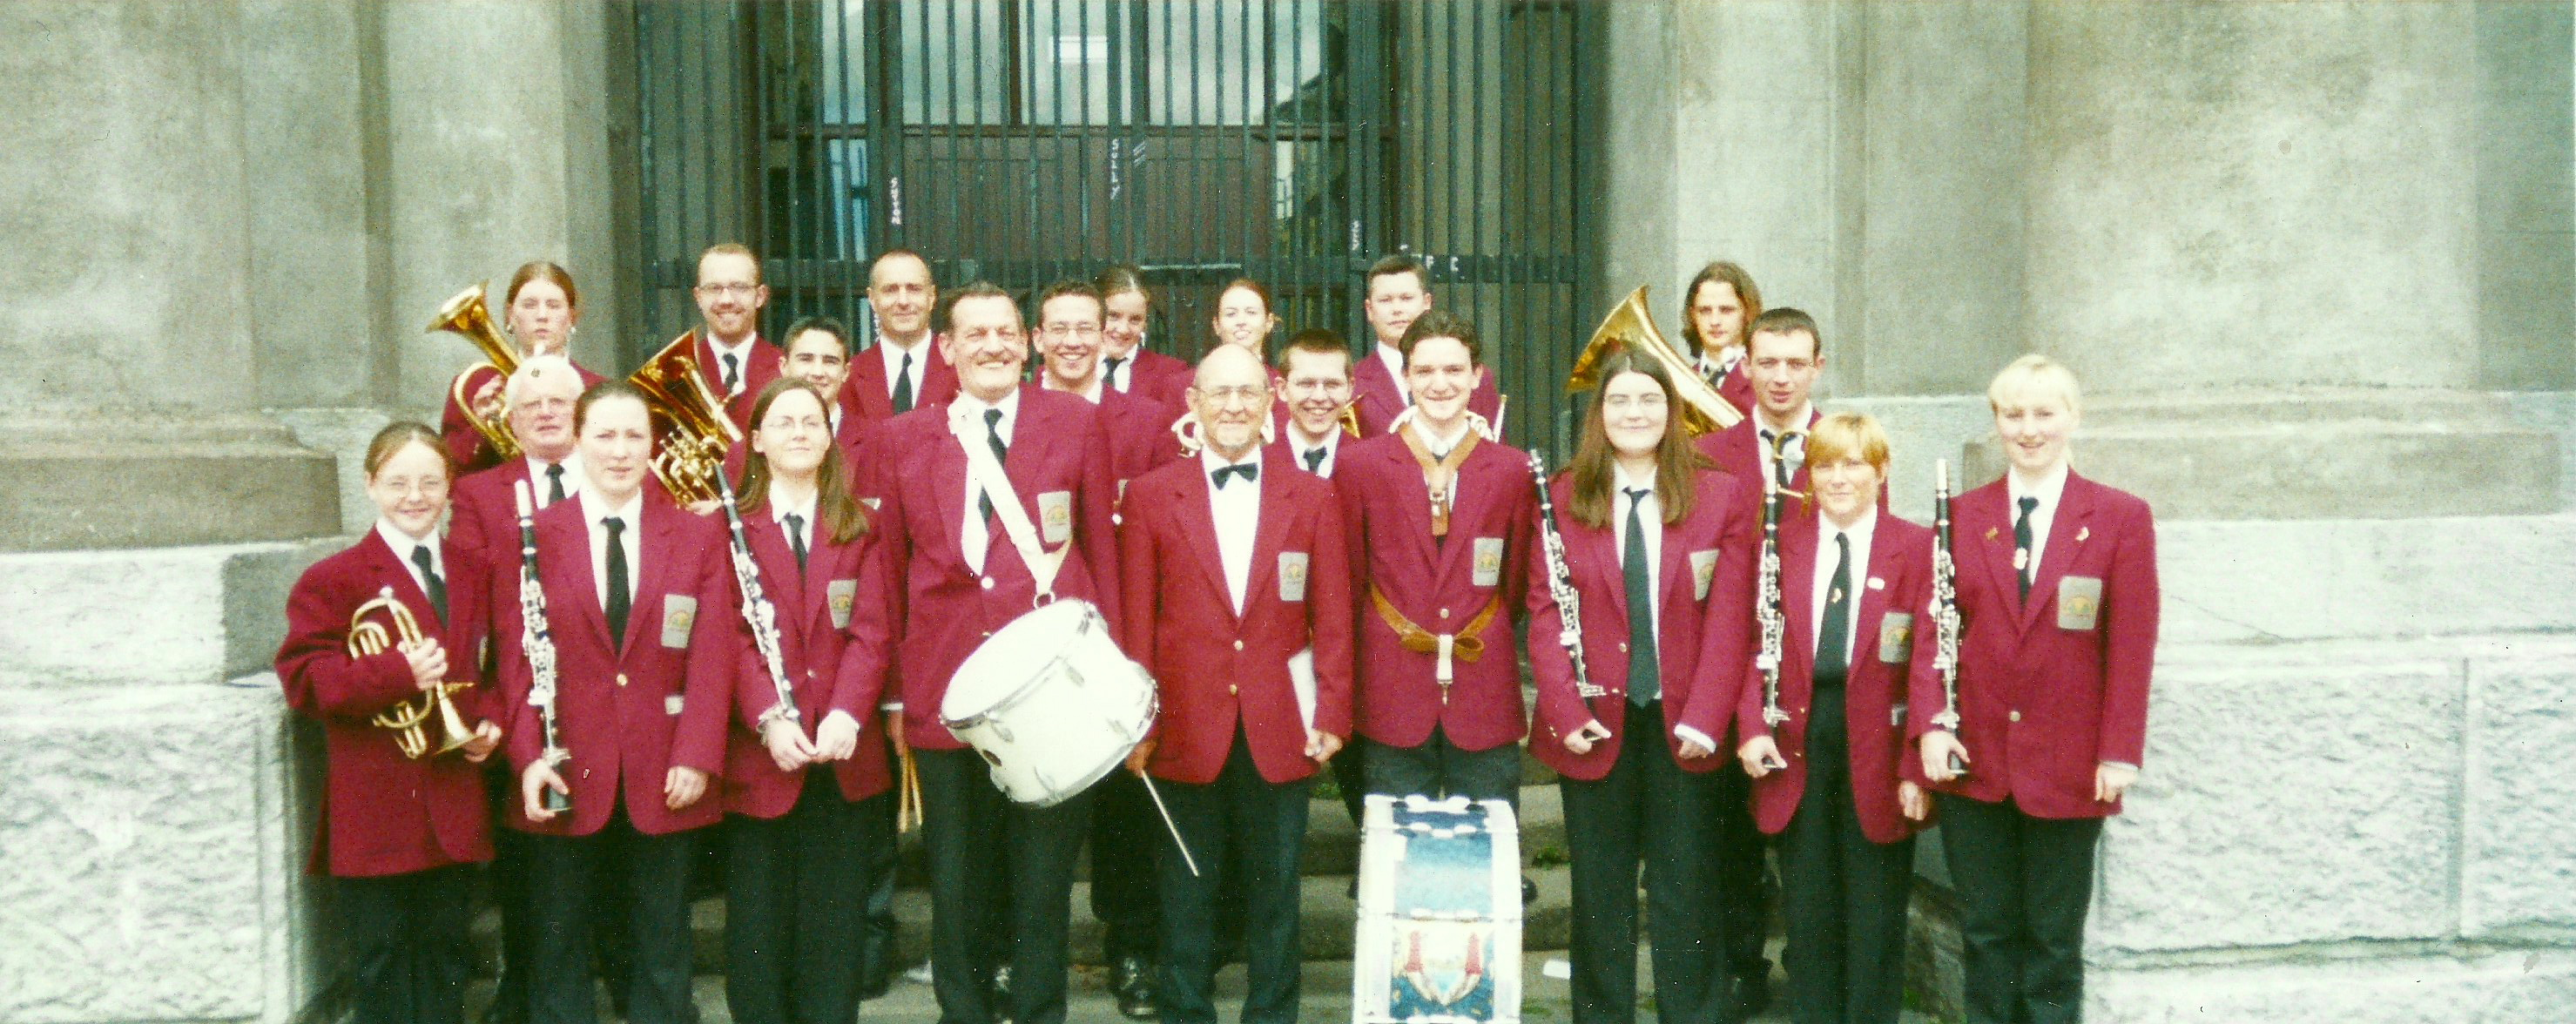 The Cork Butter Exchange Band 1990s